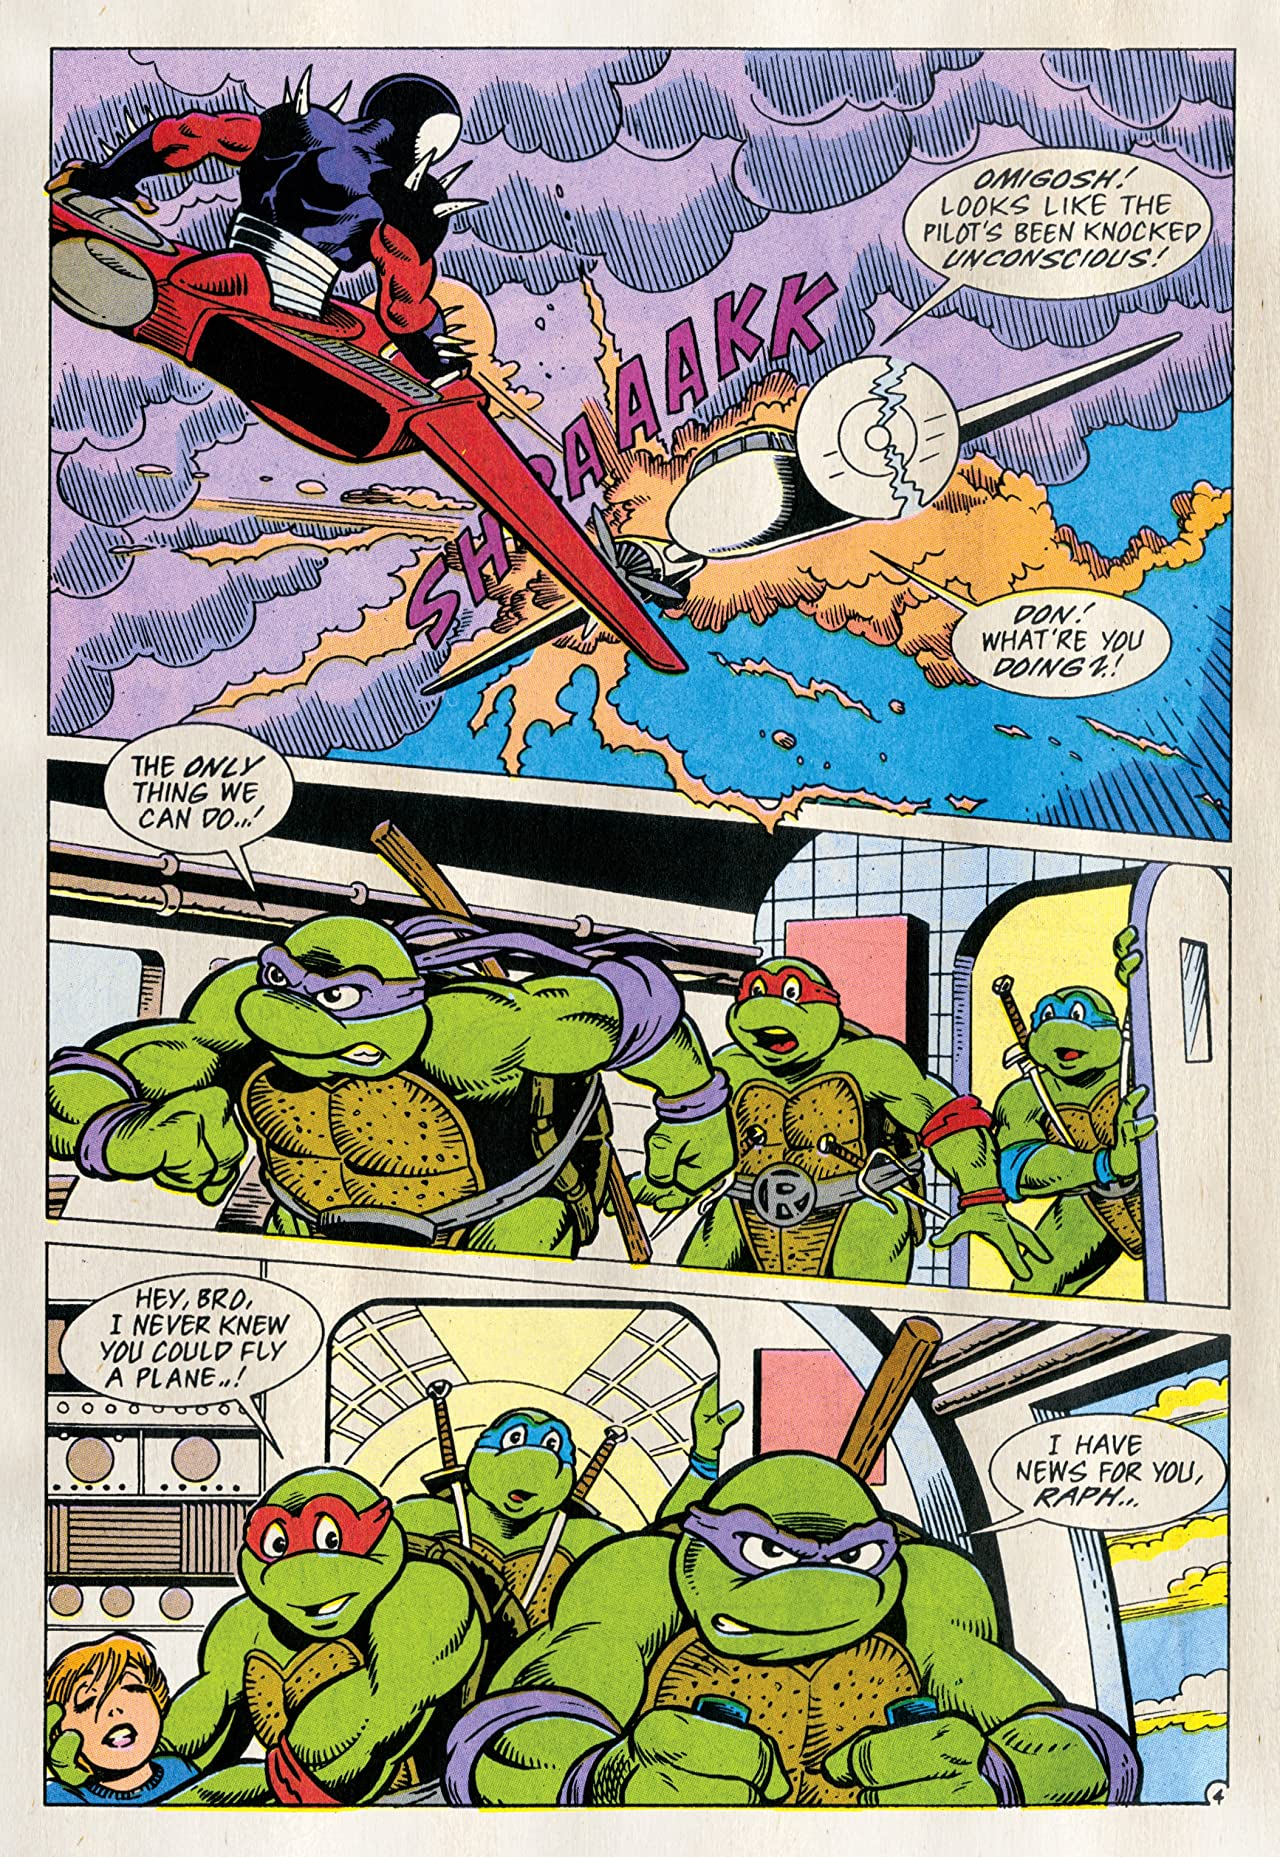 Teenage Mutant Ninja Turtles Adventures Vol. 13